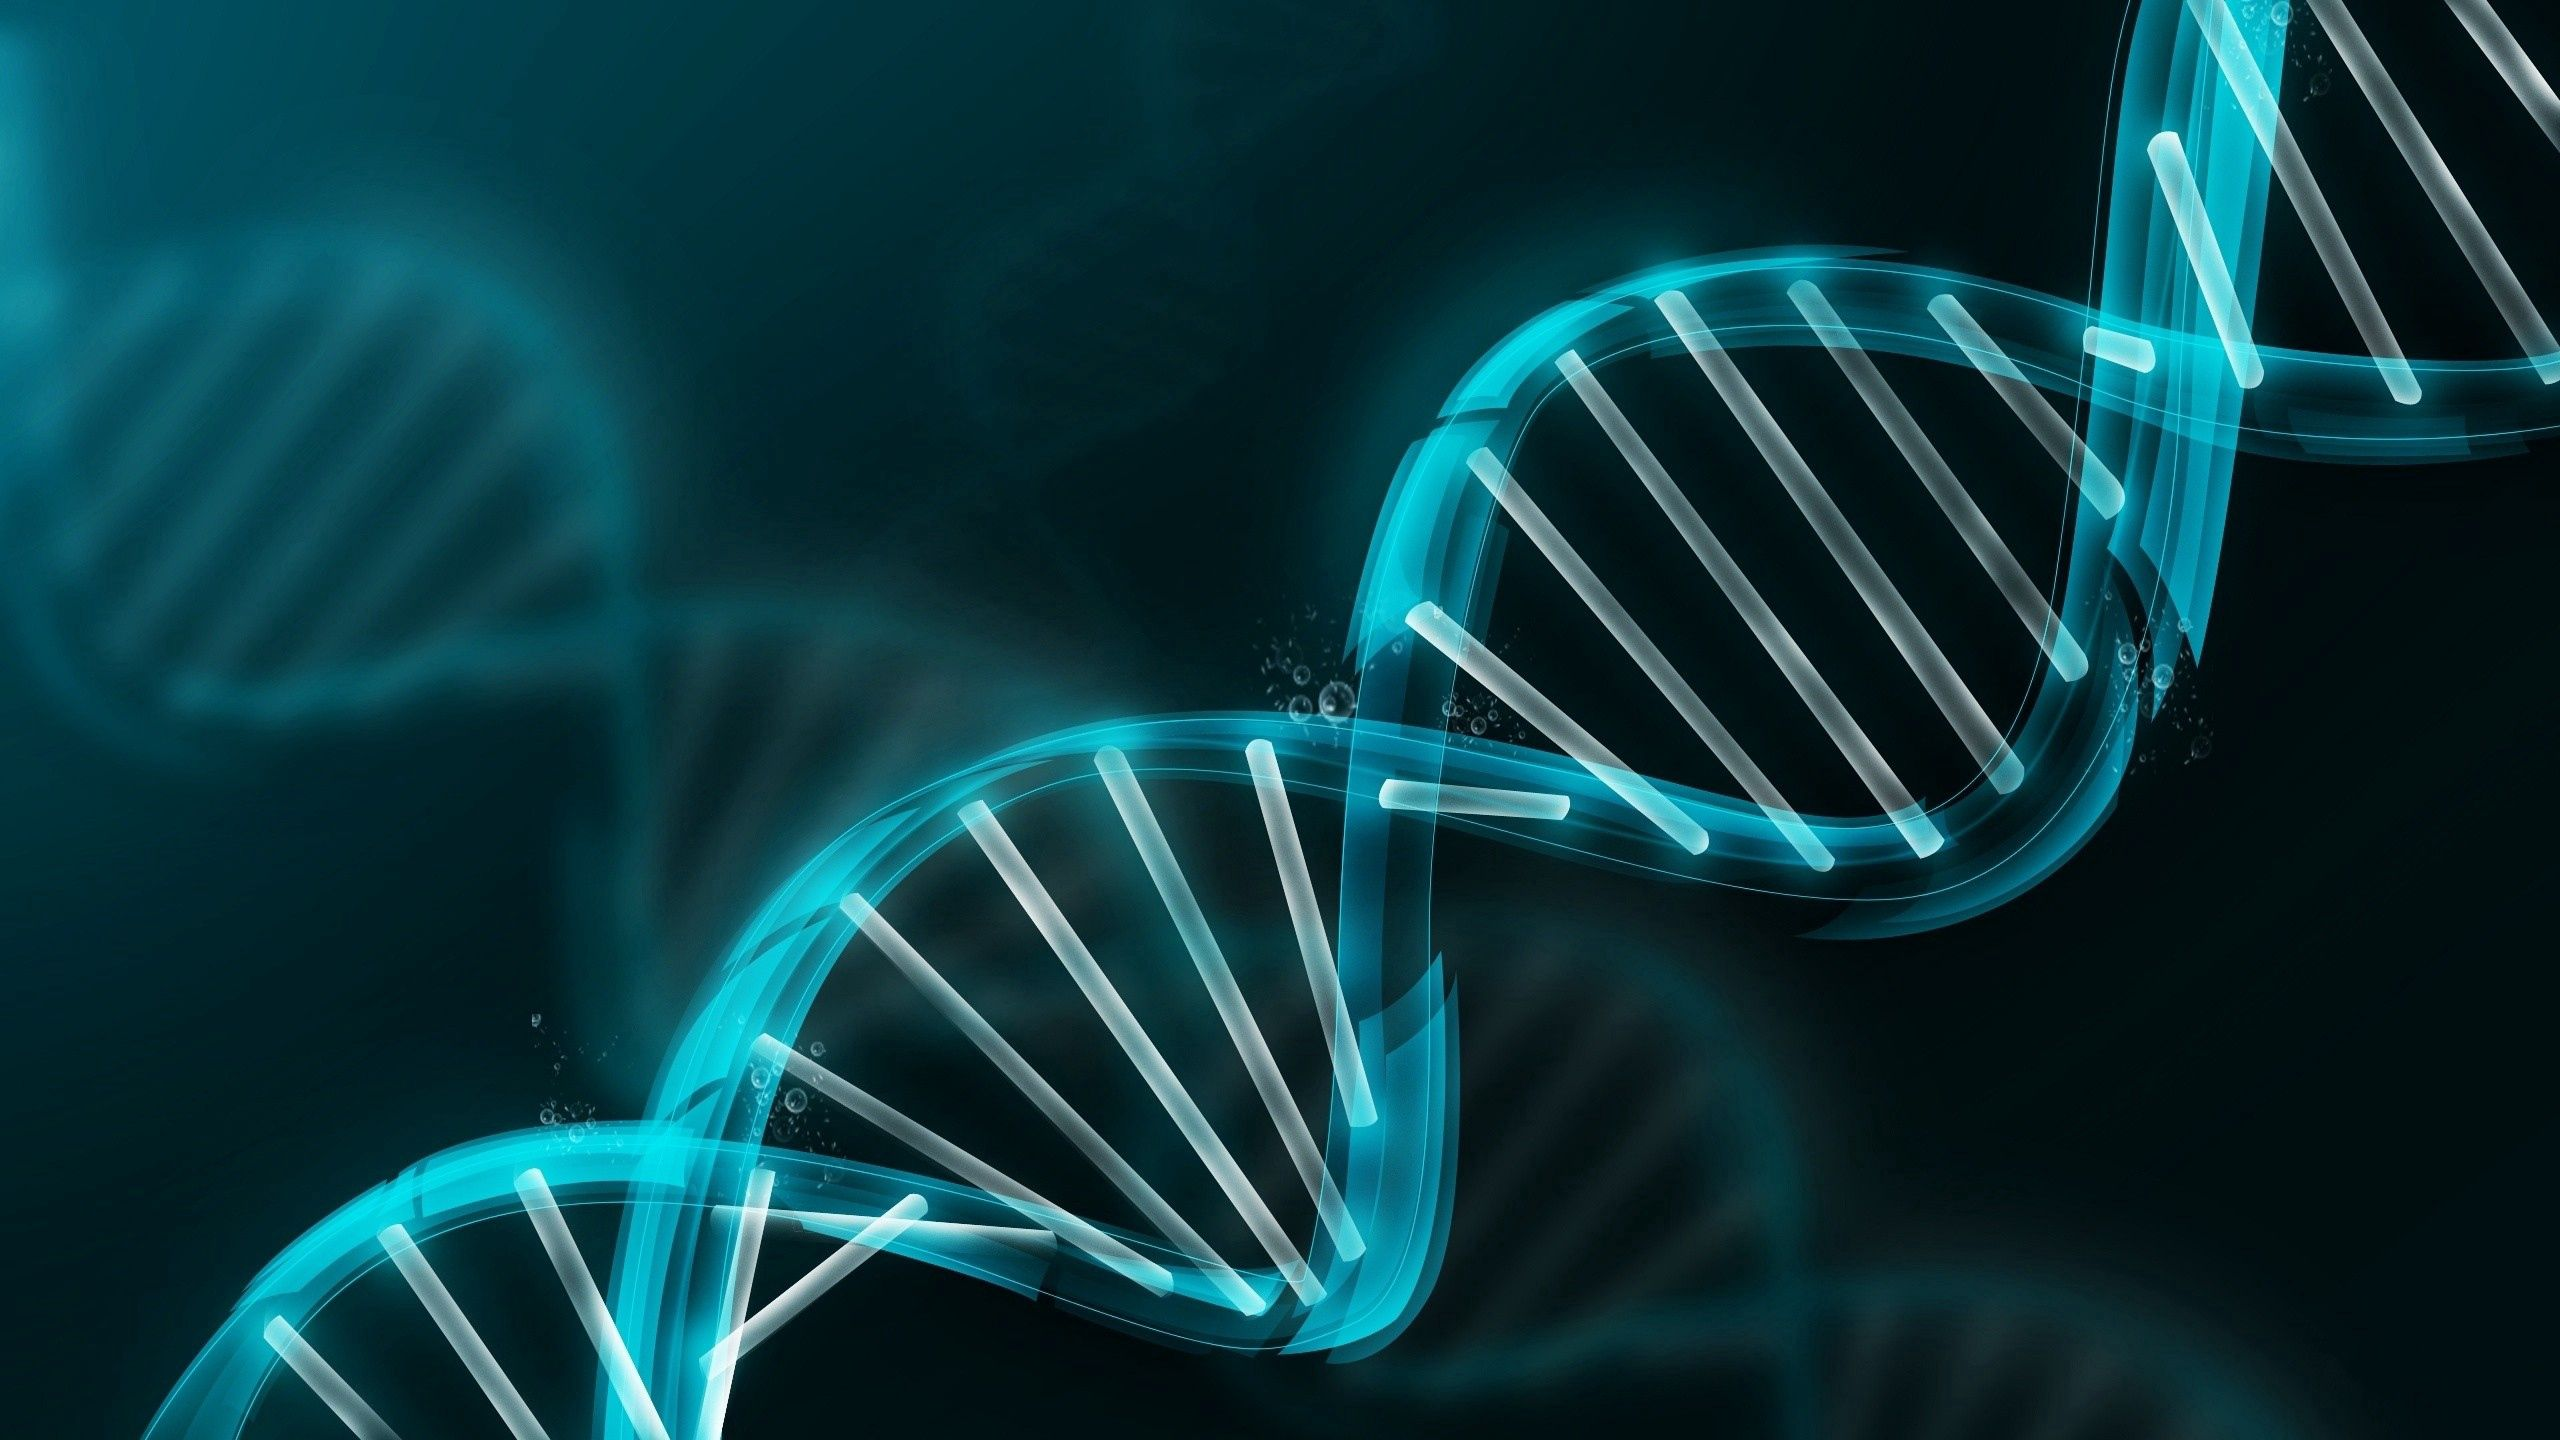 54419 download wallpaper Abstract, Dna, Spiral, Dark, Lines, Figure screensavers and pictures for free